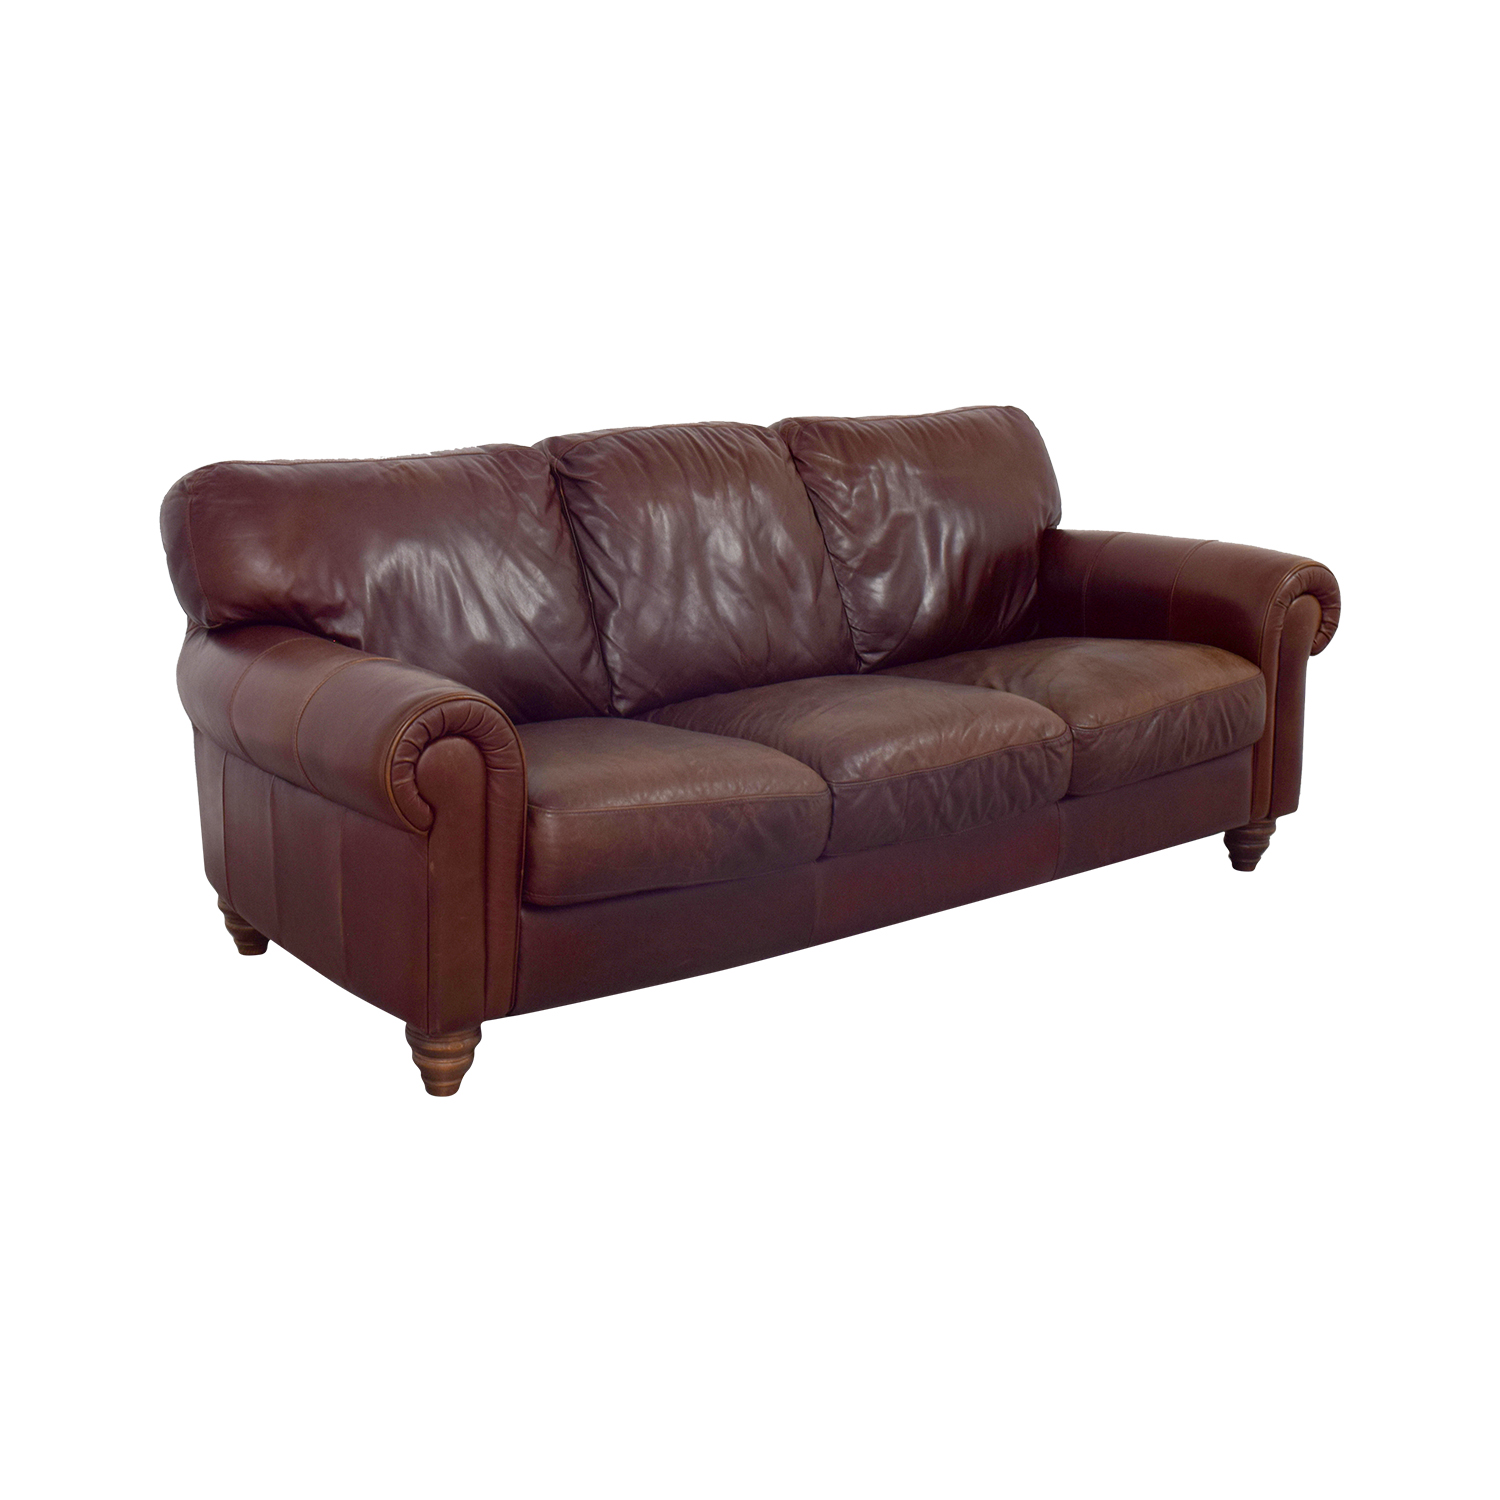 cushions for brown leather couch 90 brown three cushion leather sofas 12050